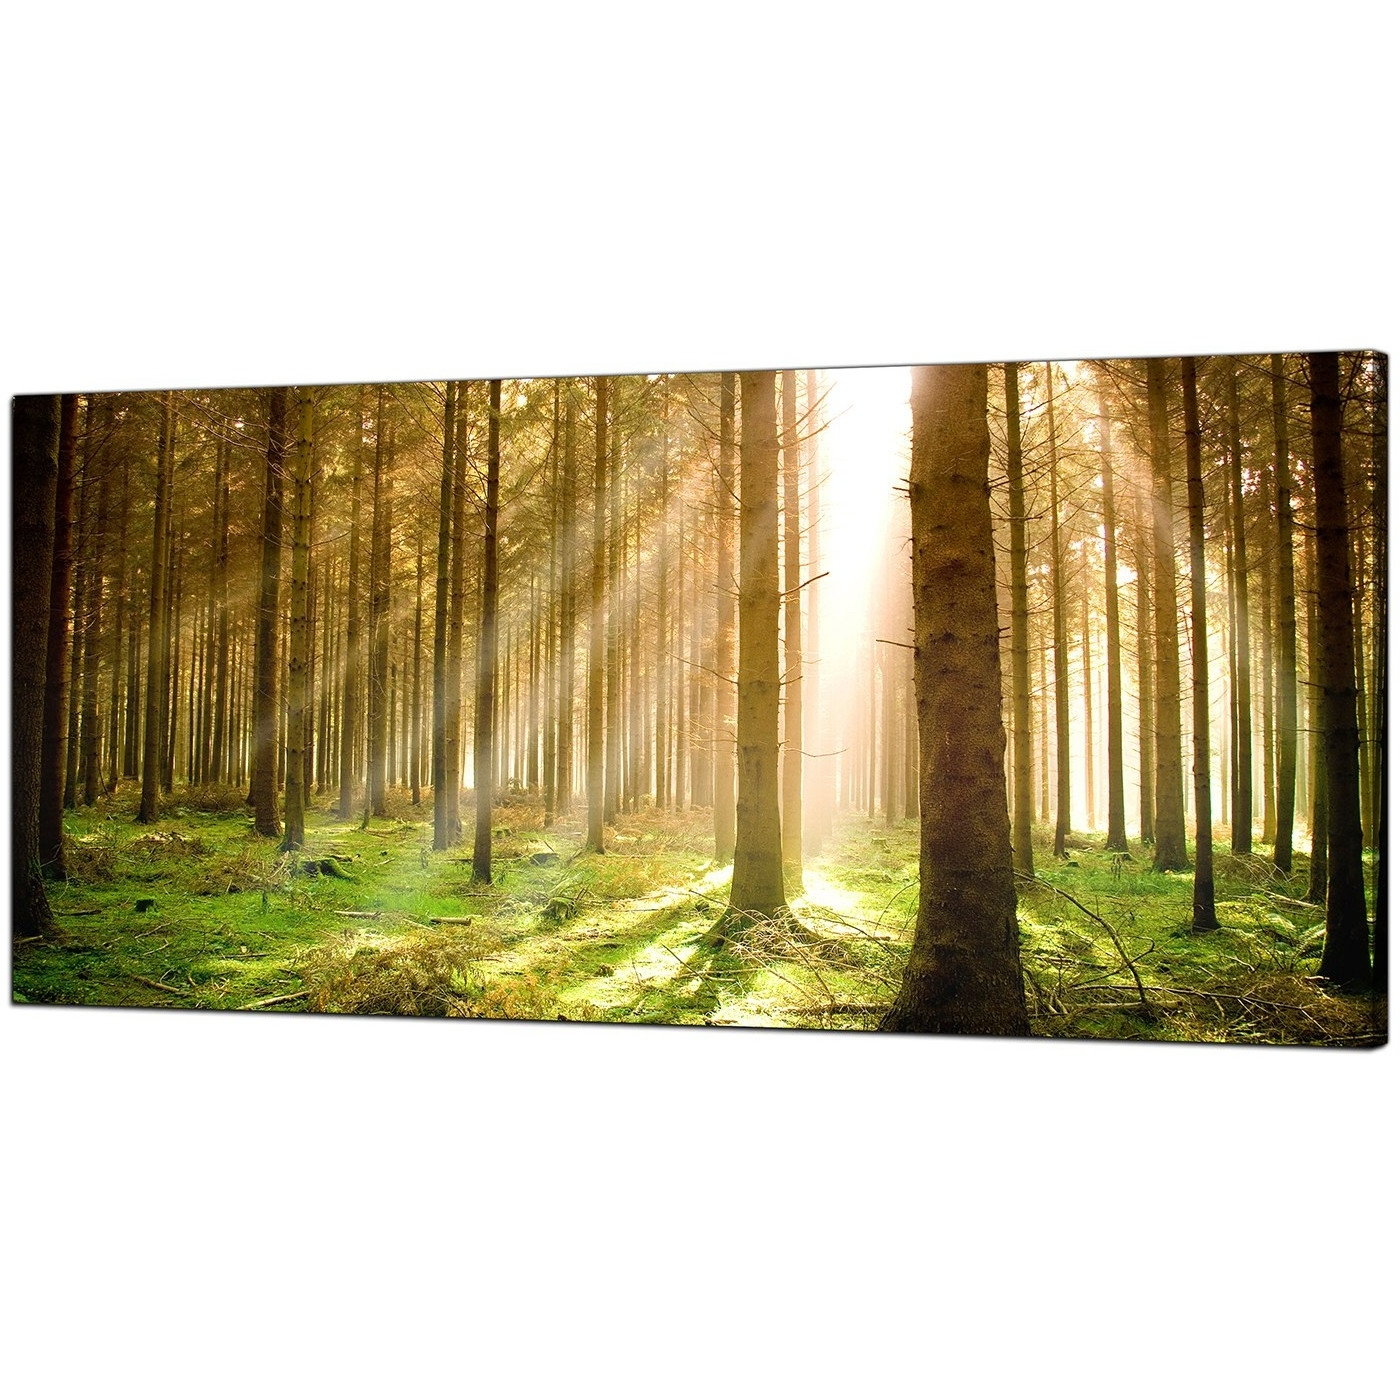 Well Liked Modern Canvas Prints Of Forest Trees For Your Dining Room With Canvas Wall Art Of Trees (View 15 of 15)